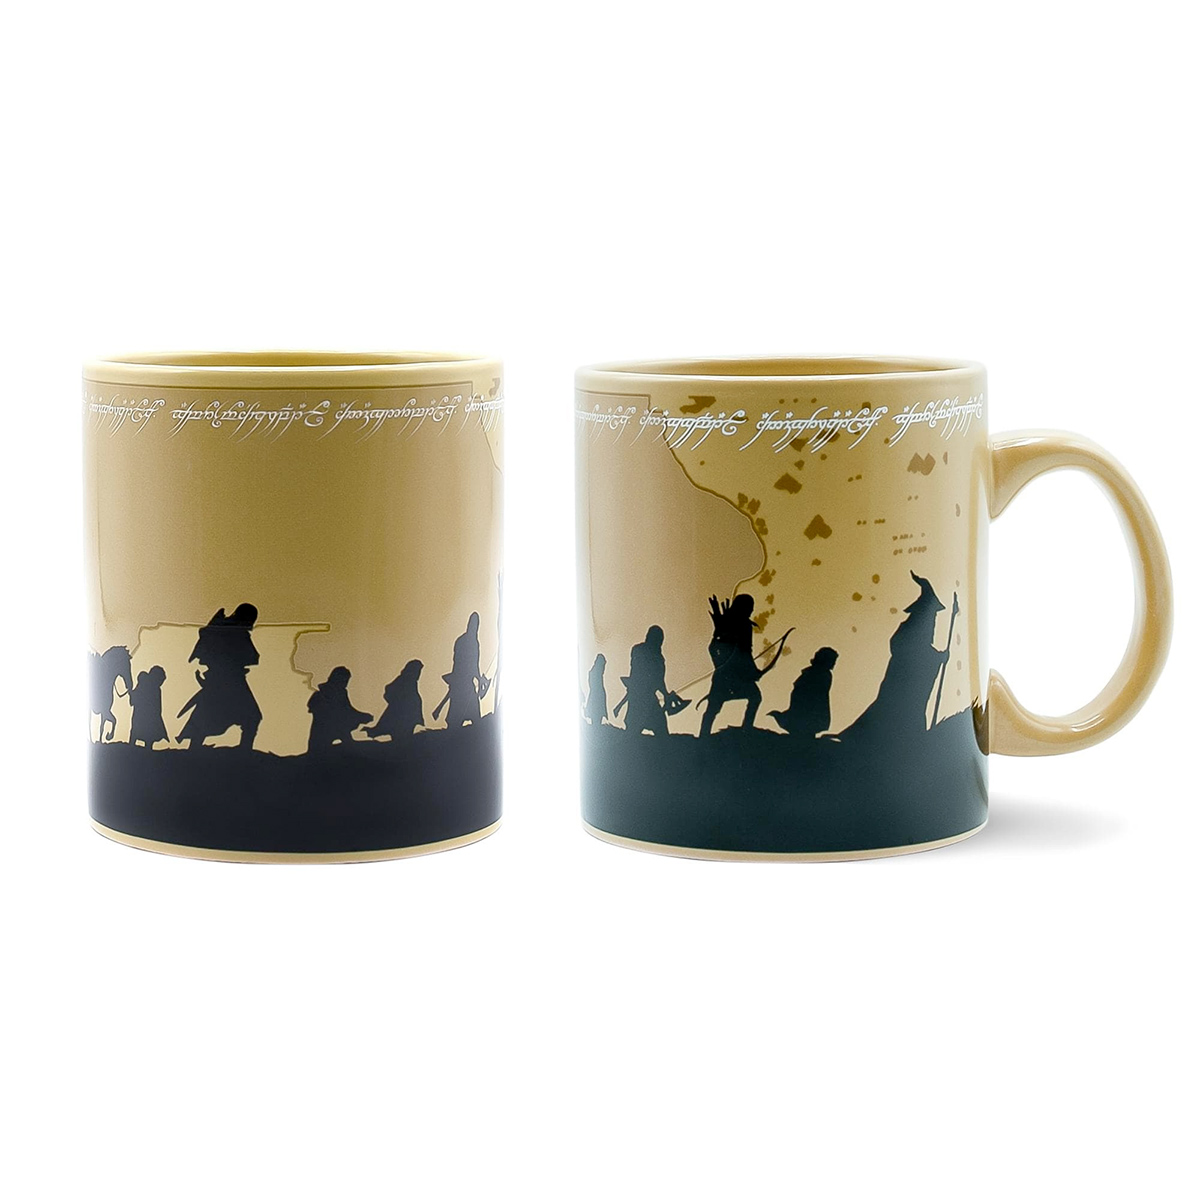 The Lord of the Rings 20 Ounces Ceramic Mug